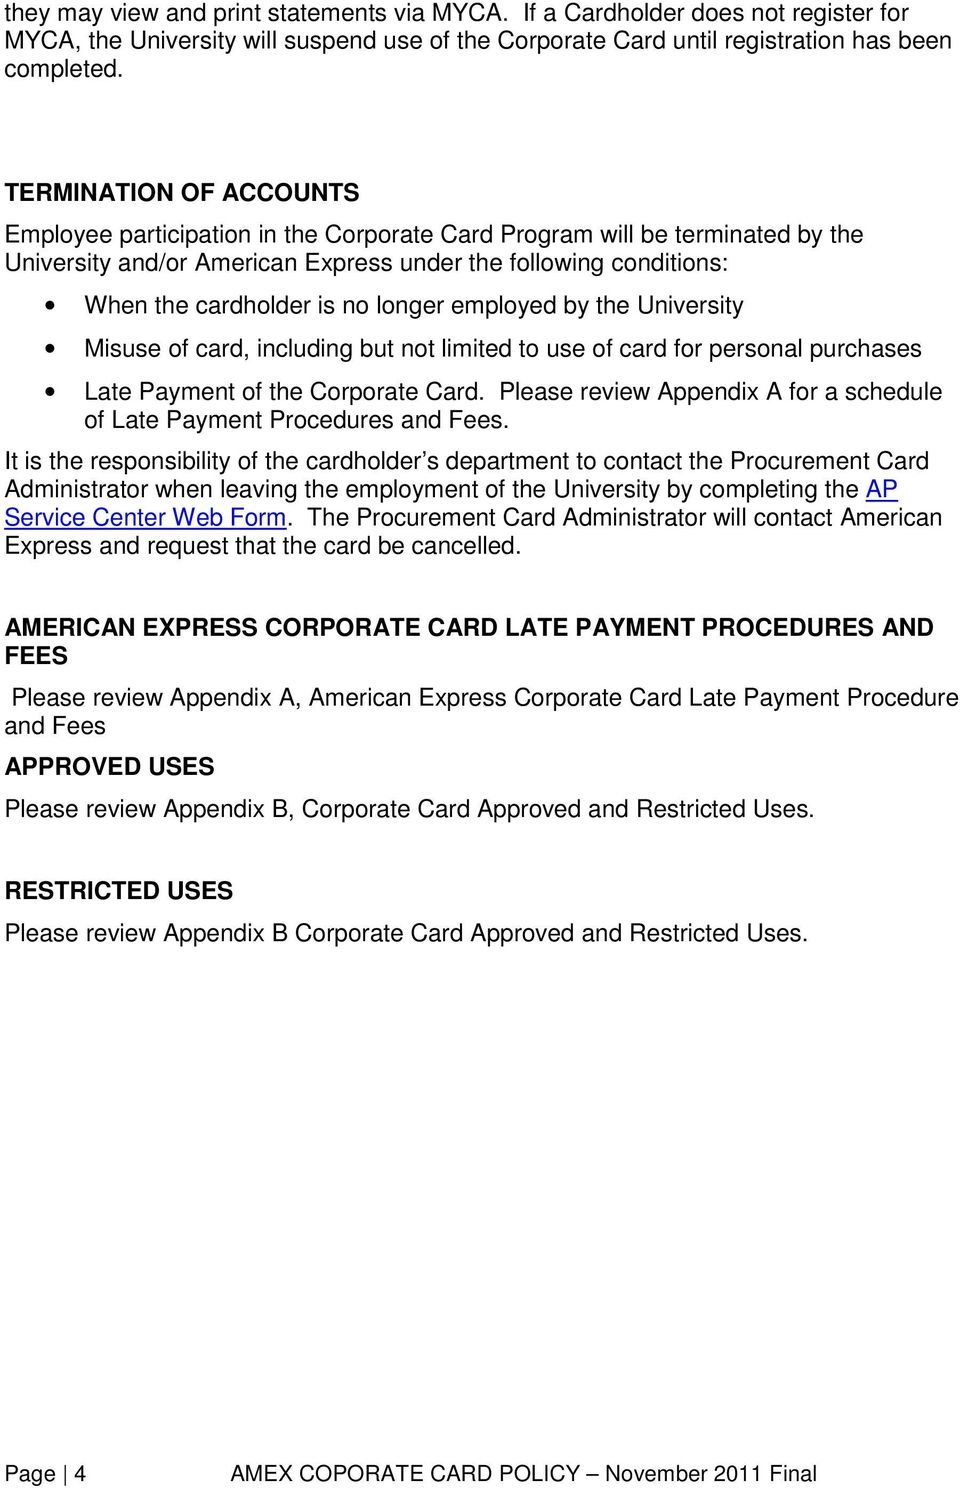 longer employed by the University Misuse of card, including but not limited to use of card for personal purchases Late Payment of the Corporate Card.